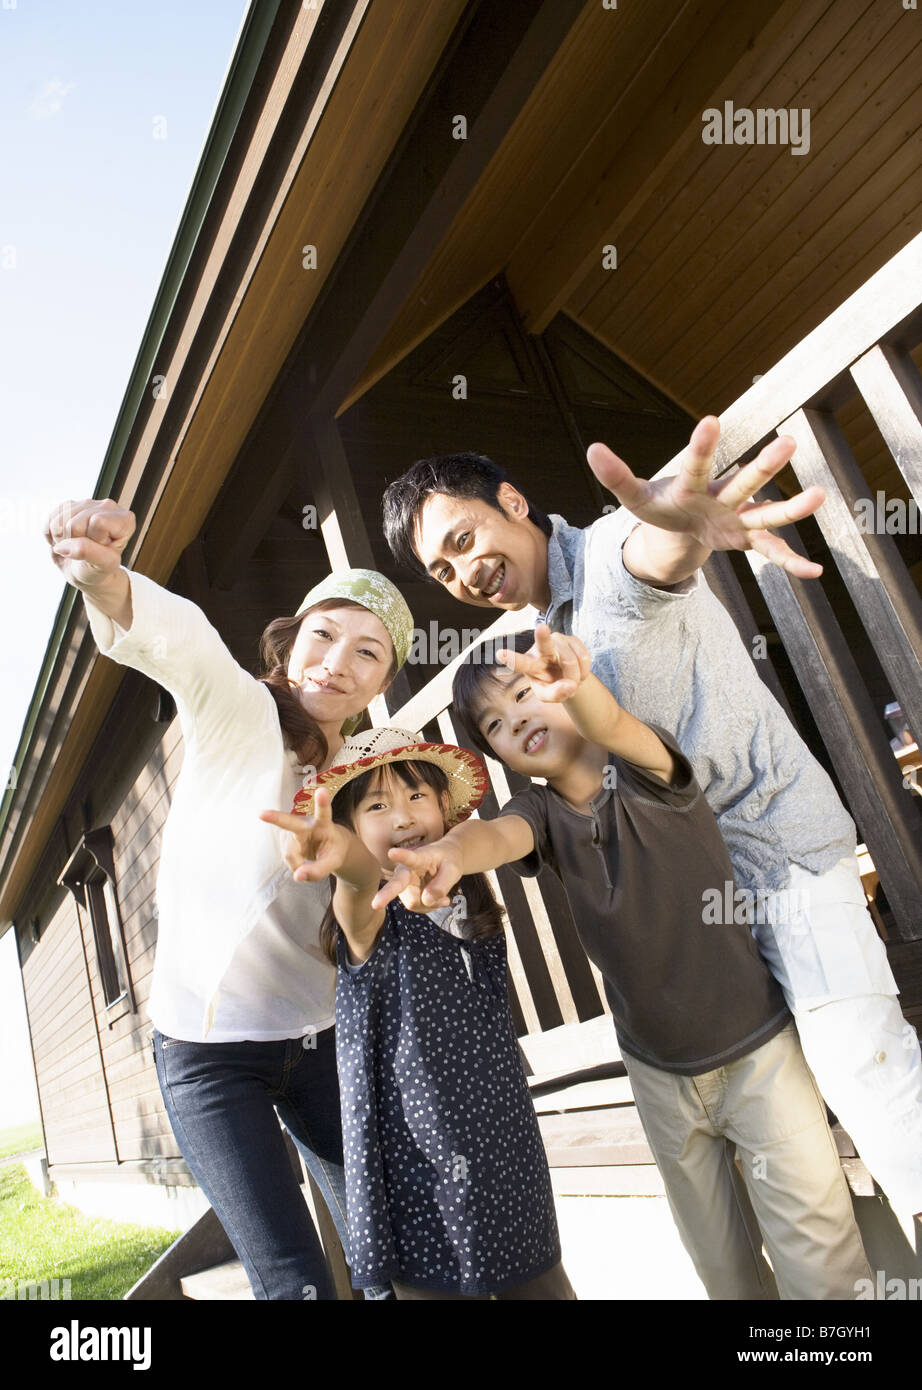 Family with poses - Stock Image